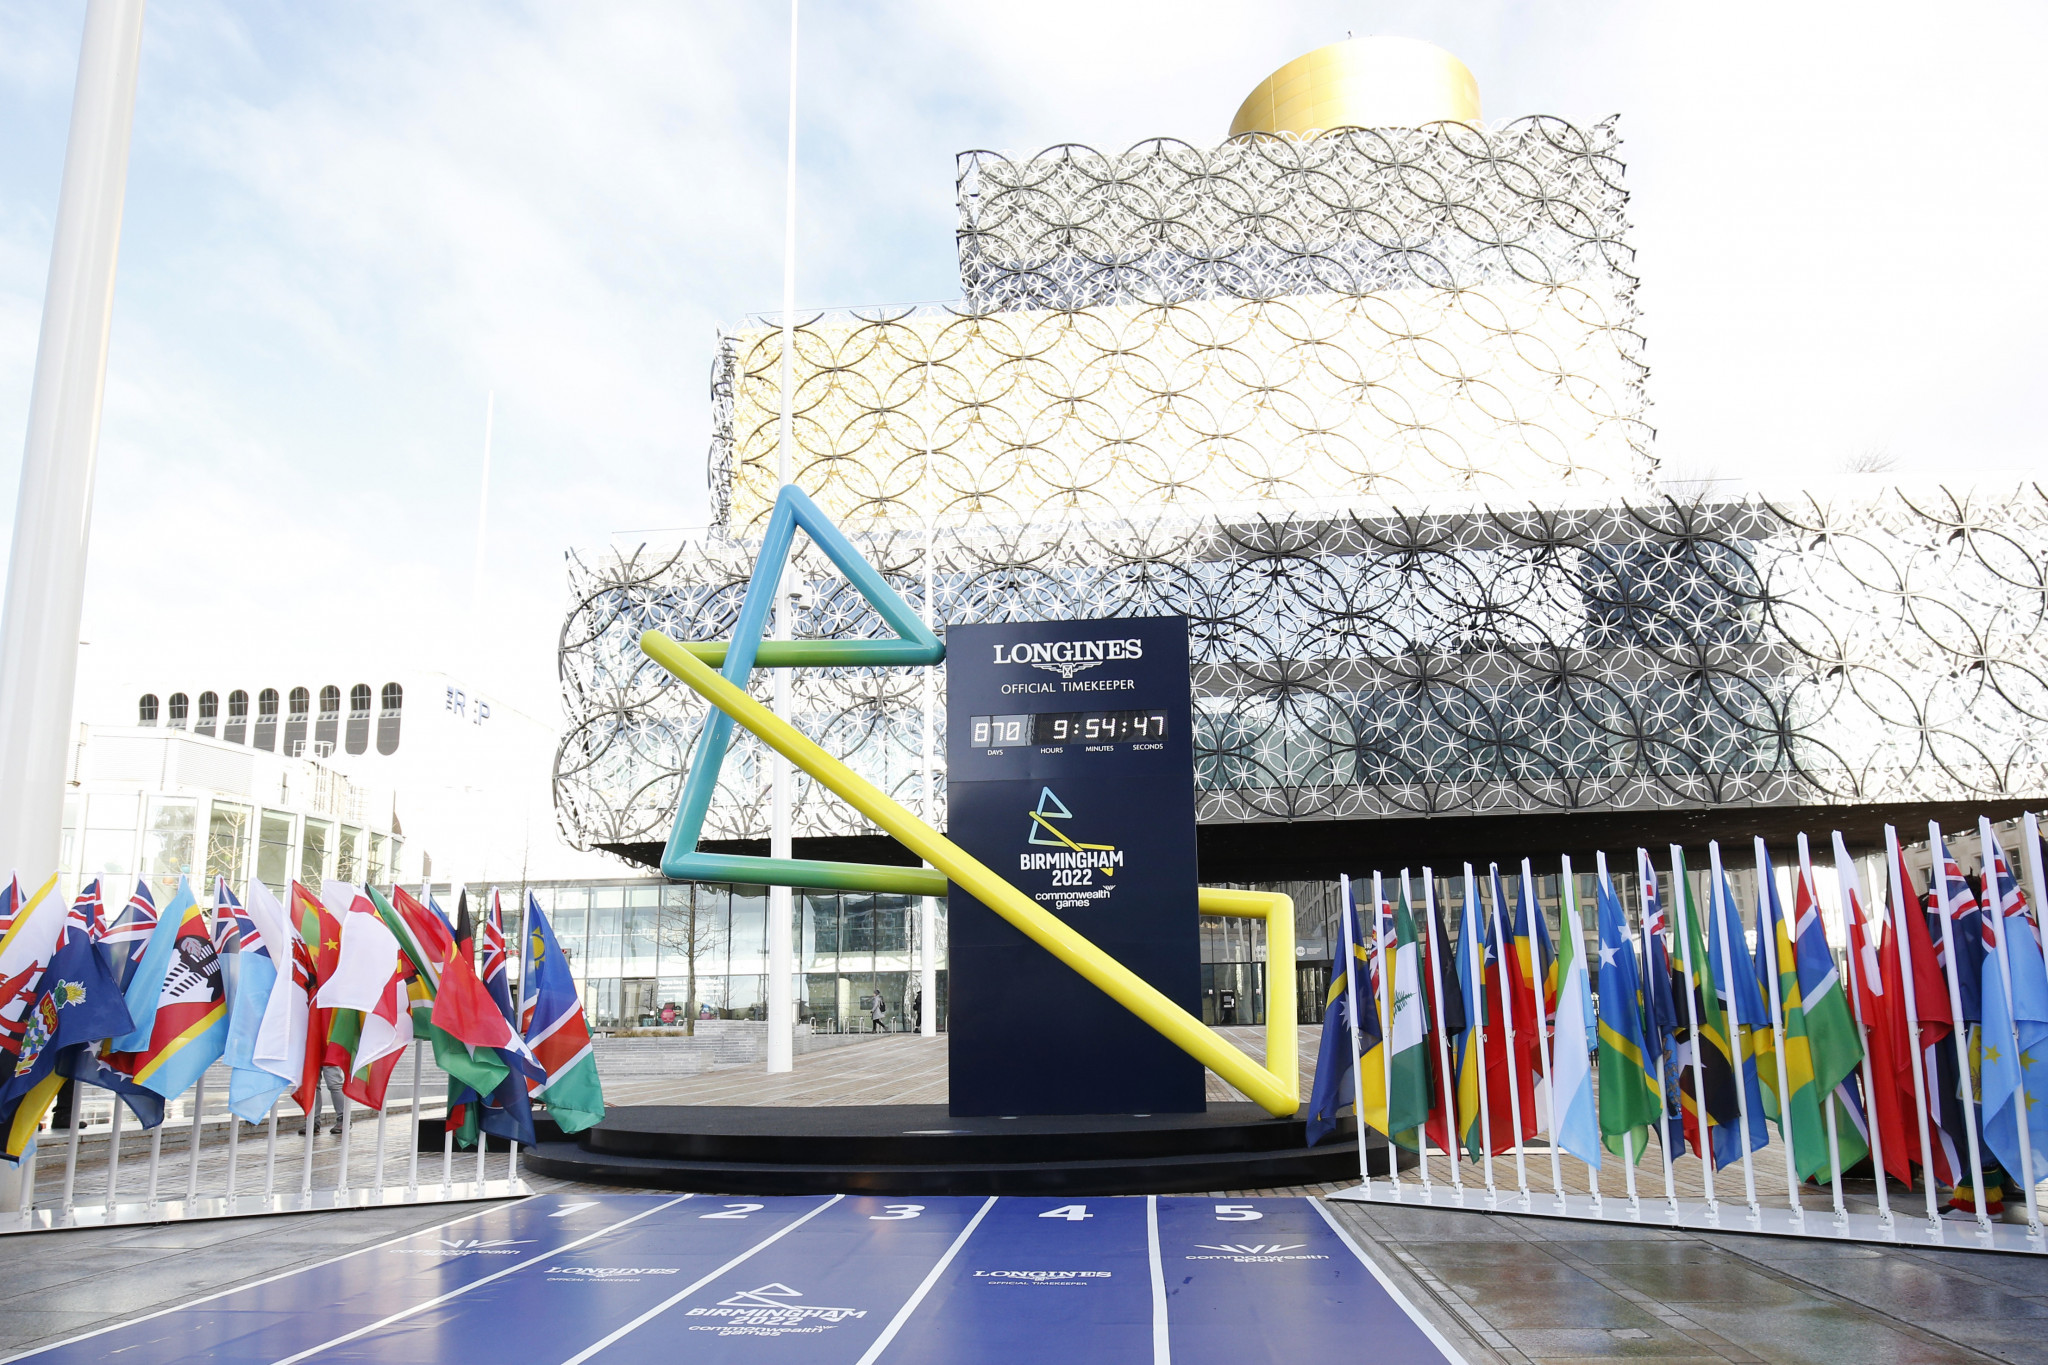 Birmingham 2022's countdown clock is set to reach 365 days to go on Wednesday ©Getty Images